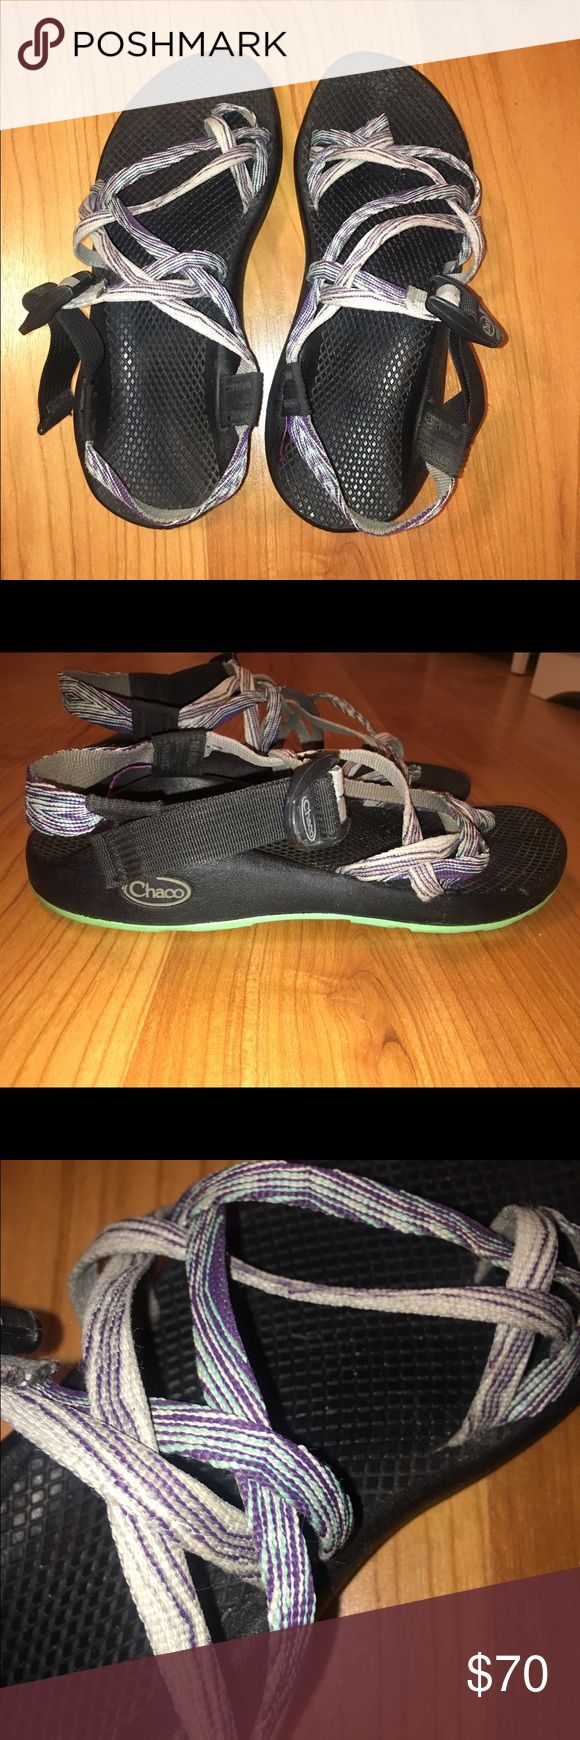 Chacos Gently worn chacos for sale!!! size 9 with very few wear and tear! perfect for those summer vacations! and leaves an awesome tan line on your feet! will clean good before shipping! Chacos Shoes Sandals